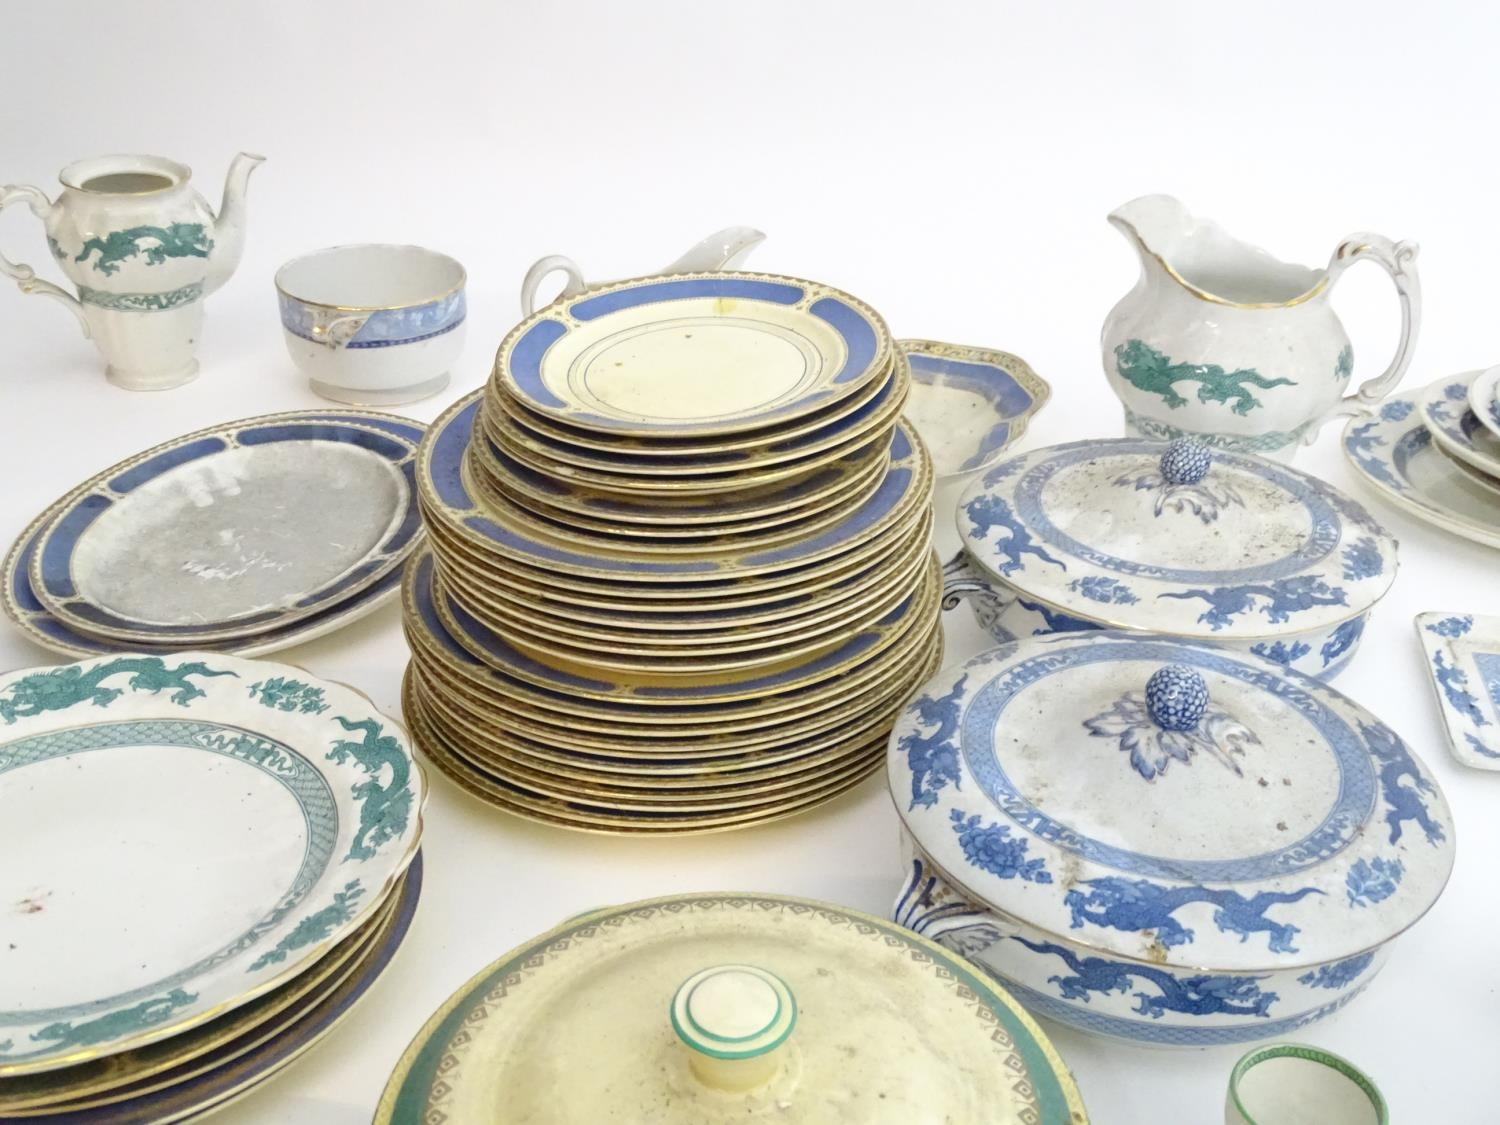 A large quantity of assorted Booths china to include teapots, plates, tureens, jugs, serving dishes, - Image 4 of 17